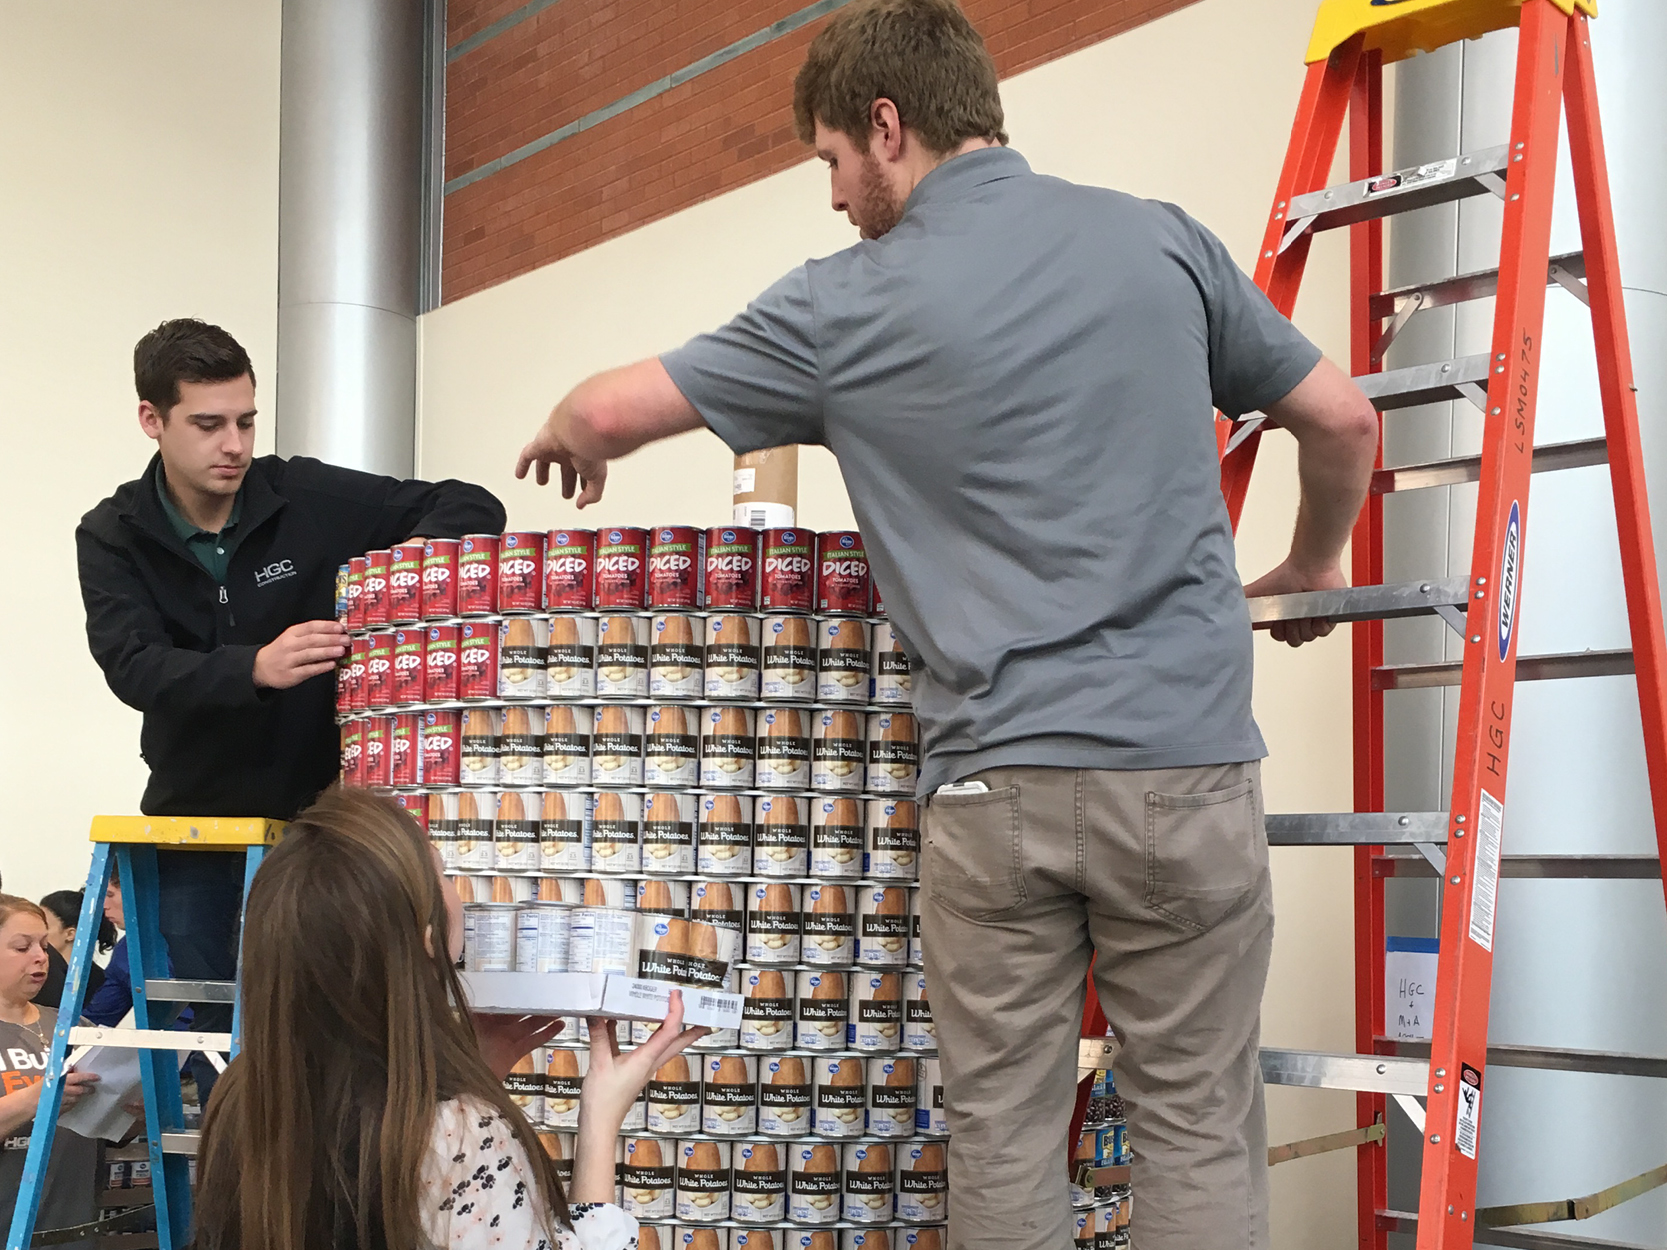 Three people are assembling a cylindrical structure out of canned goods. Farthest away and to the left of the image is a young man with a tan complexion and short, black hair. He is standing on a small blue ladder and arranging cans of diced tomatoes at the top of the structure. In the middle, standing on the ground, and facing away from the camera, is a young woman with light skin and long, straight brown hair with honey highlights. She is holding a tray of canned potatoes. To the right, facing away from the camera and standing on a large orange ladder, is a young man with light skin, short brown hair and a beard. He is reaching out to adjust the top row of canned tomatoes.